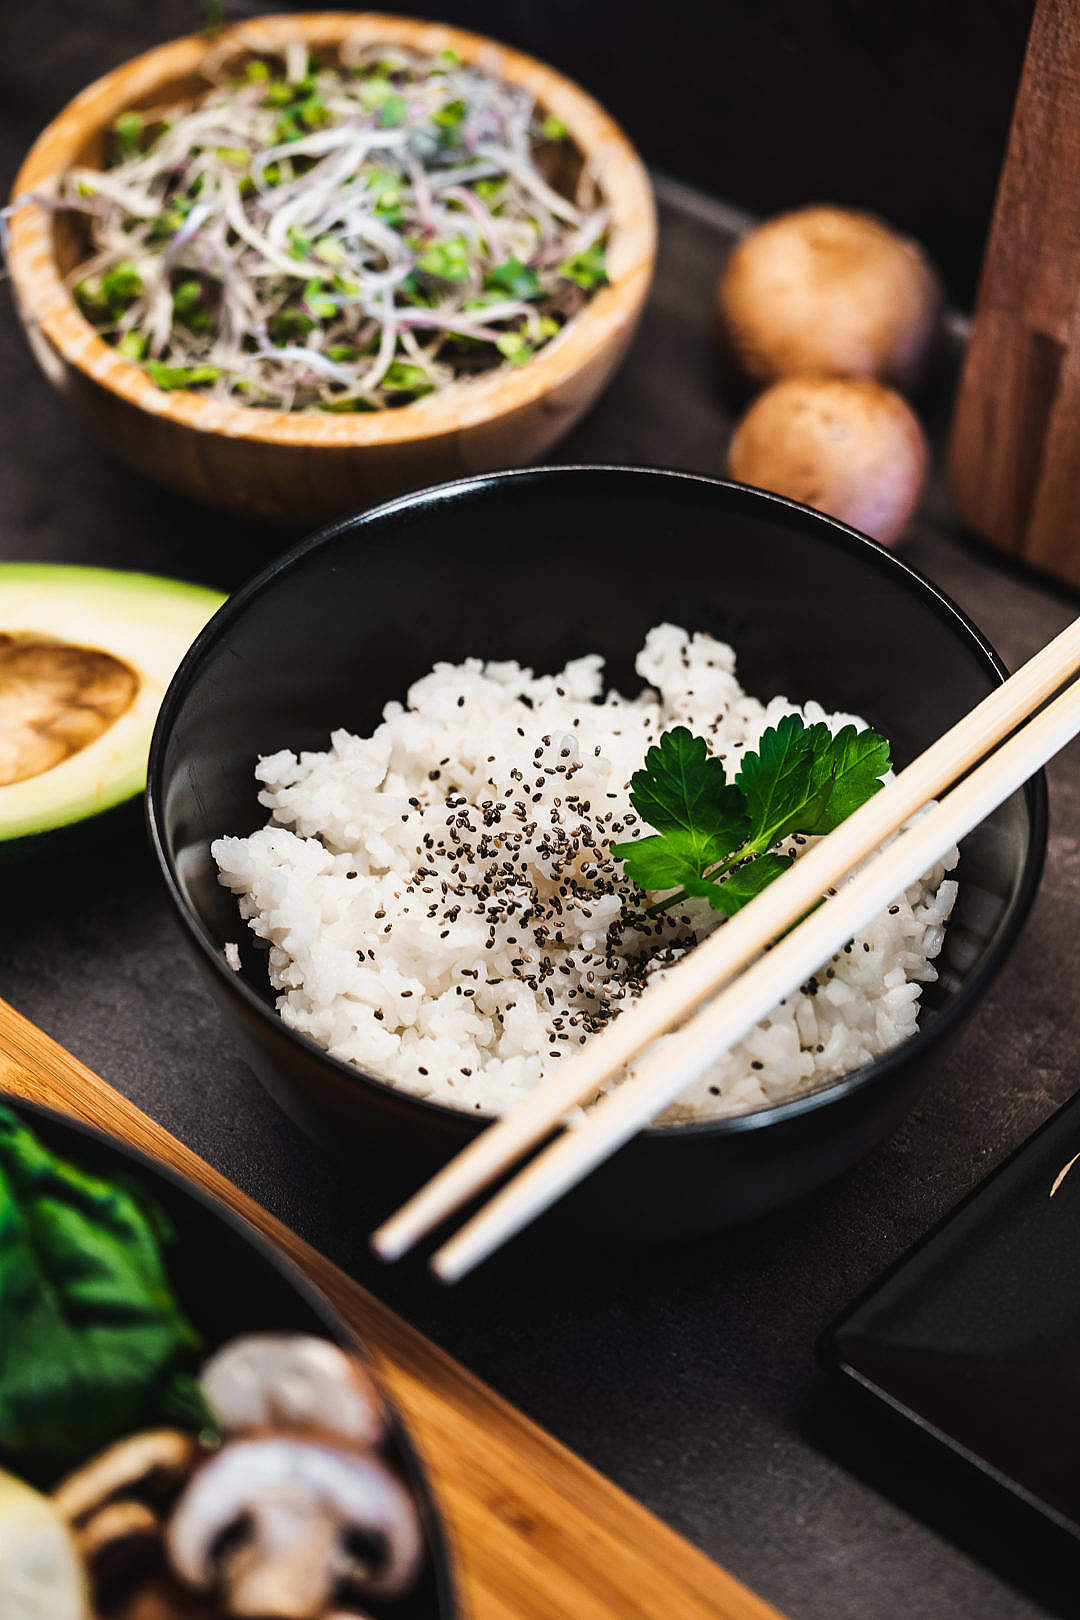 Download Cooked Jasmine Rice in a Dark Bowl with Chopsticks FREE Stock Photo